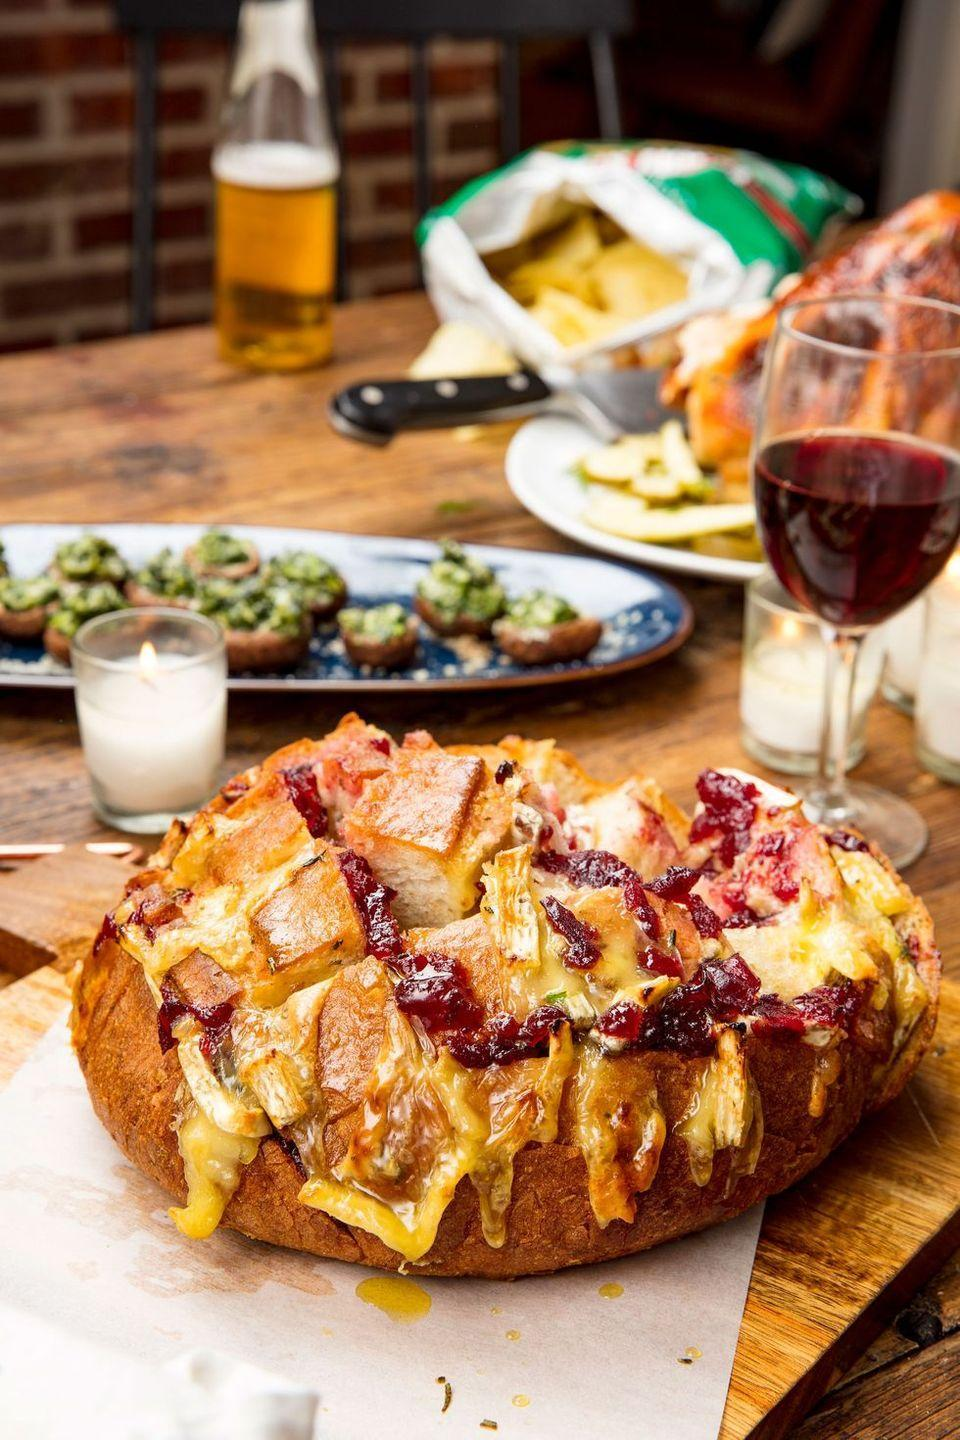 """<p>Watch your friends and family fight over this sweet and savory pull-apart bread made from scratch. </p><p><em><strong>Get the recipe from <a href=""""https://www.delish.com/cooking/recipe-ideas/recipes/a57209/cranberry-brie-pull-apart-bread-recipe/"""" rel=""""nofollow noopener"""" target=""""_blank"""" data-ylk=""""slk:Delish"""" class=""""link rapid-noclick-resp"""">Delish</a>.</strong></em><em><br></em></p>"""